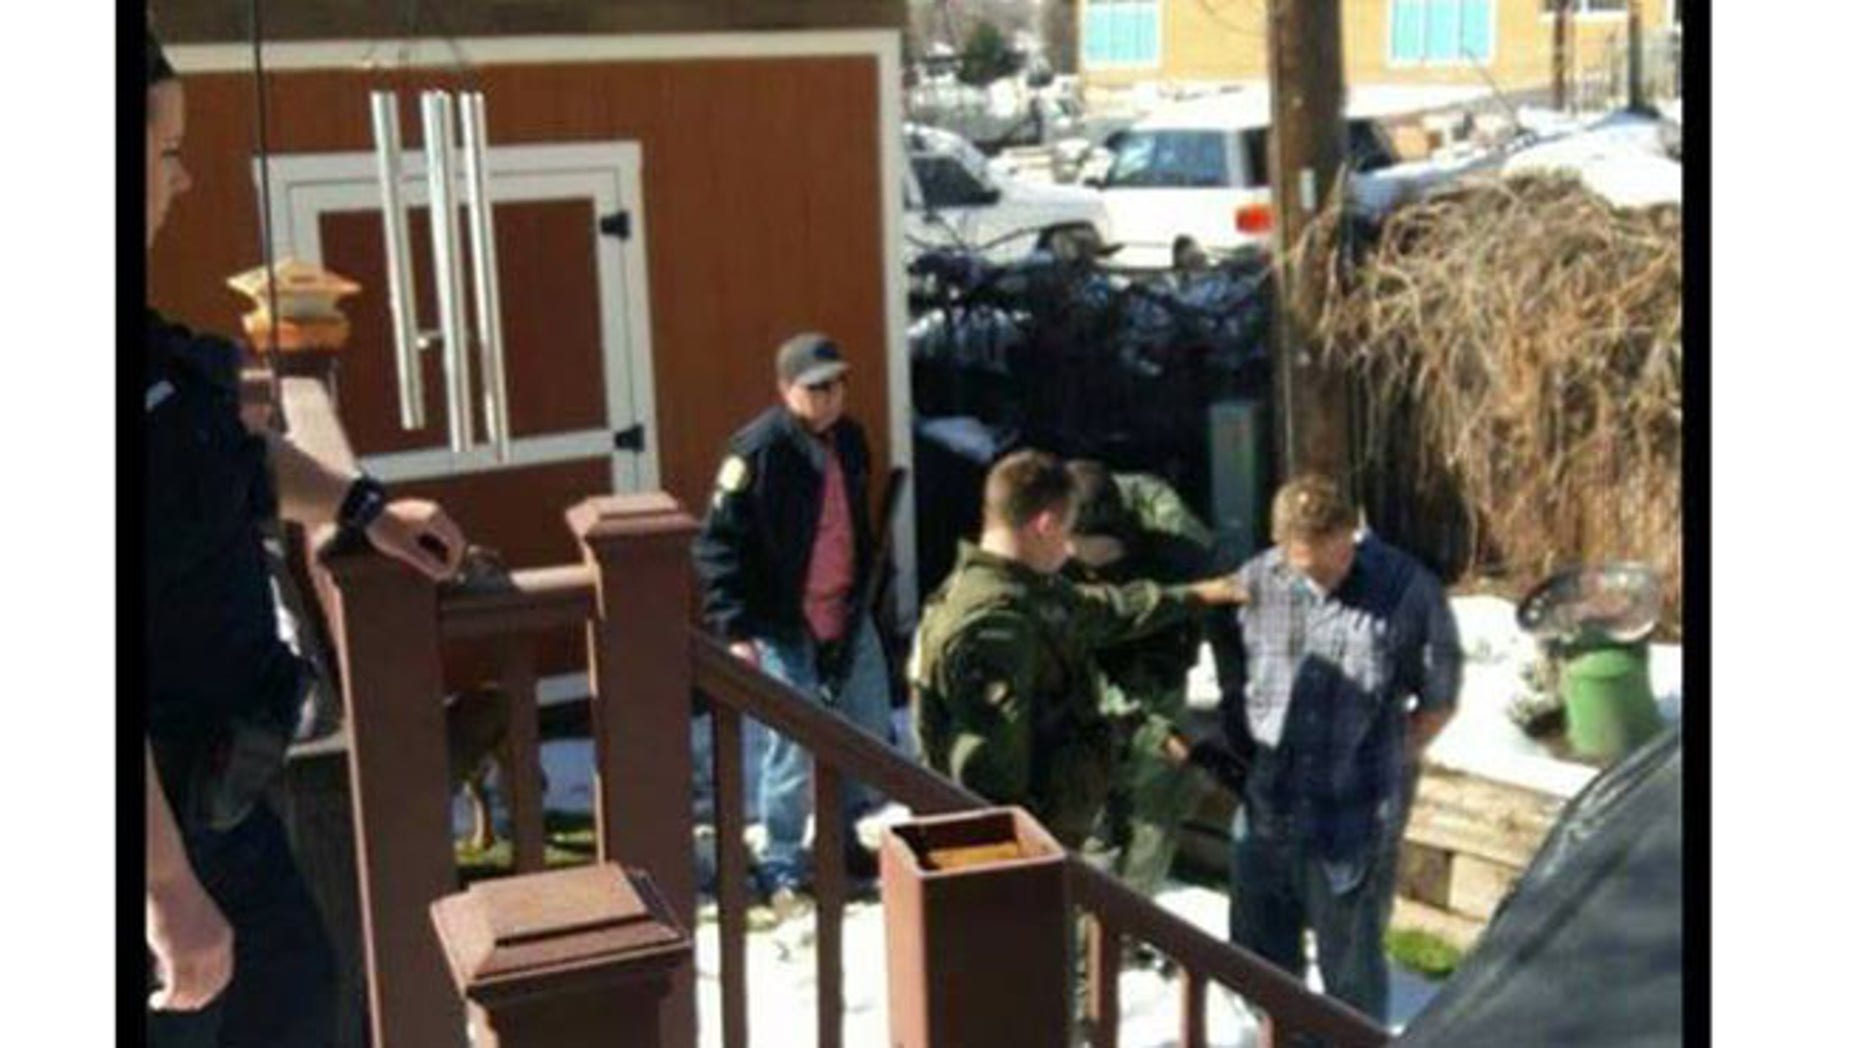 Police reported the capture of a fugitive who ran into a SWAT Team and K9 units in training in Provo, Utah, Thursday.